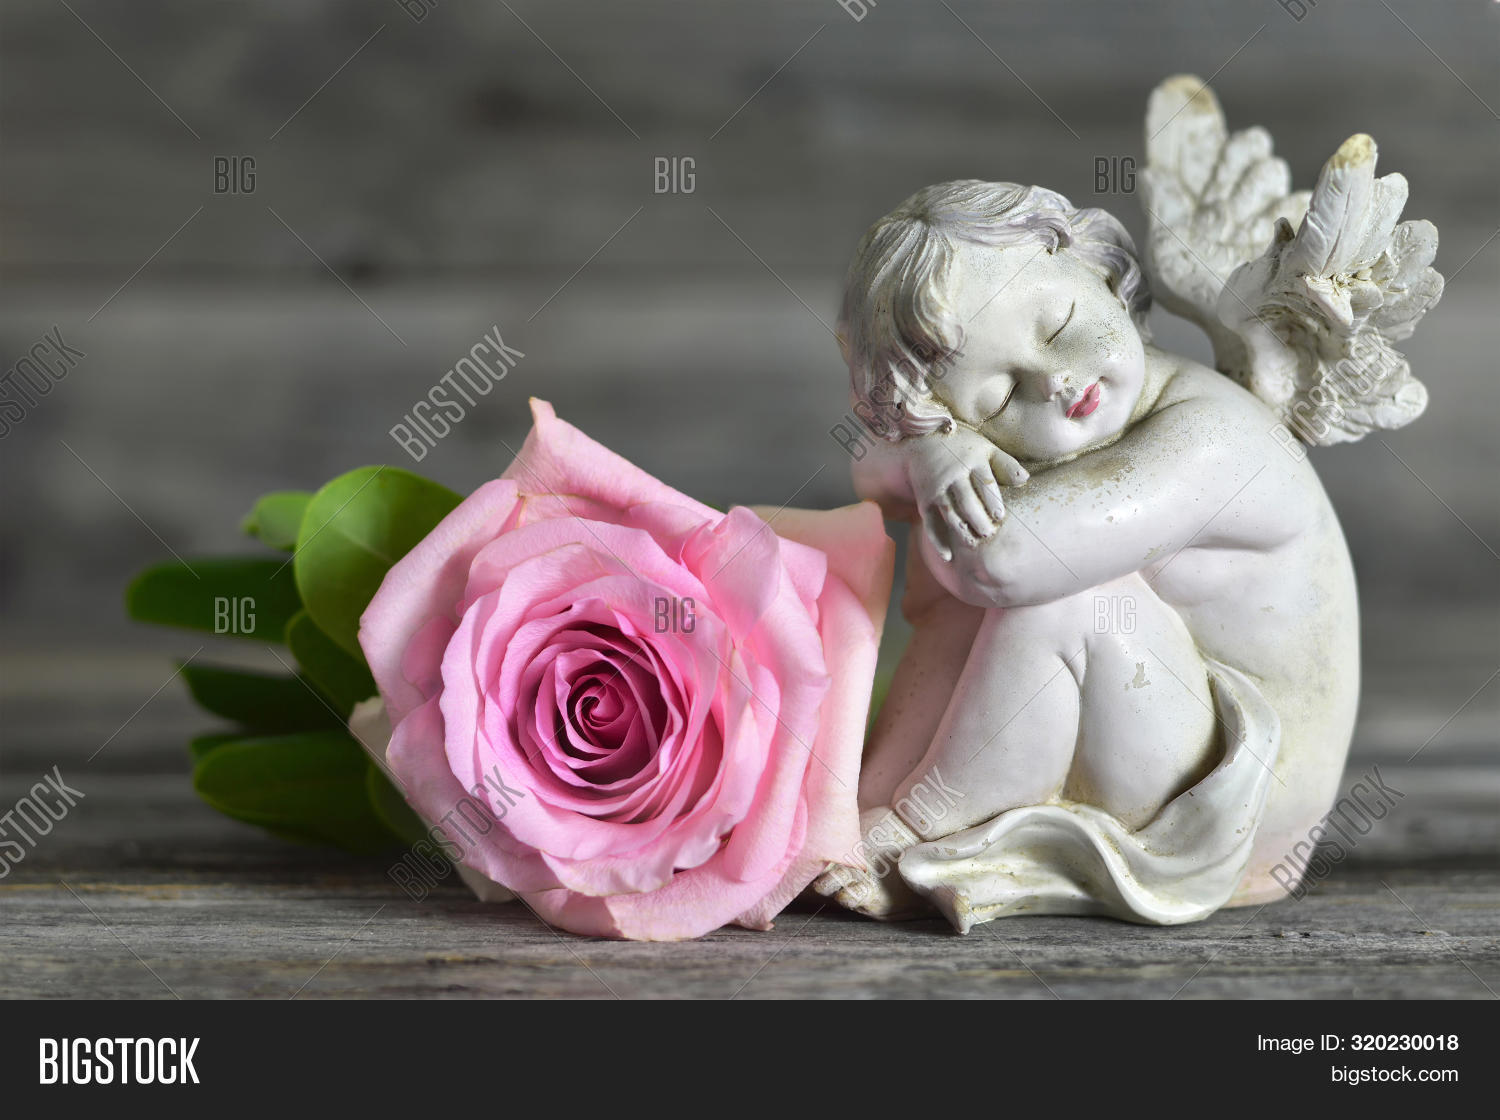 Guardian Angel Rose On Image Photo